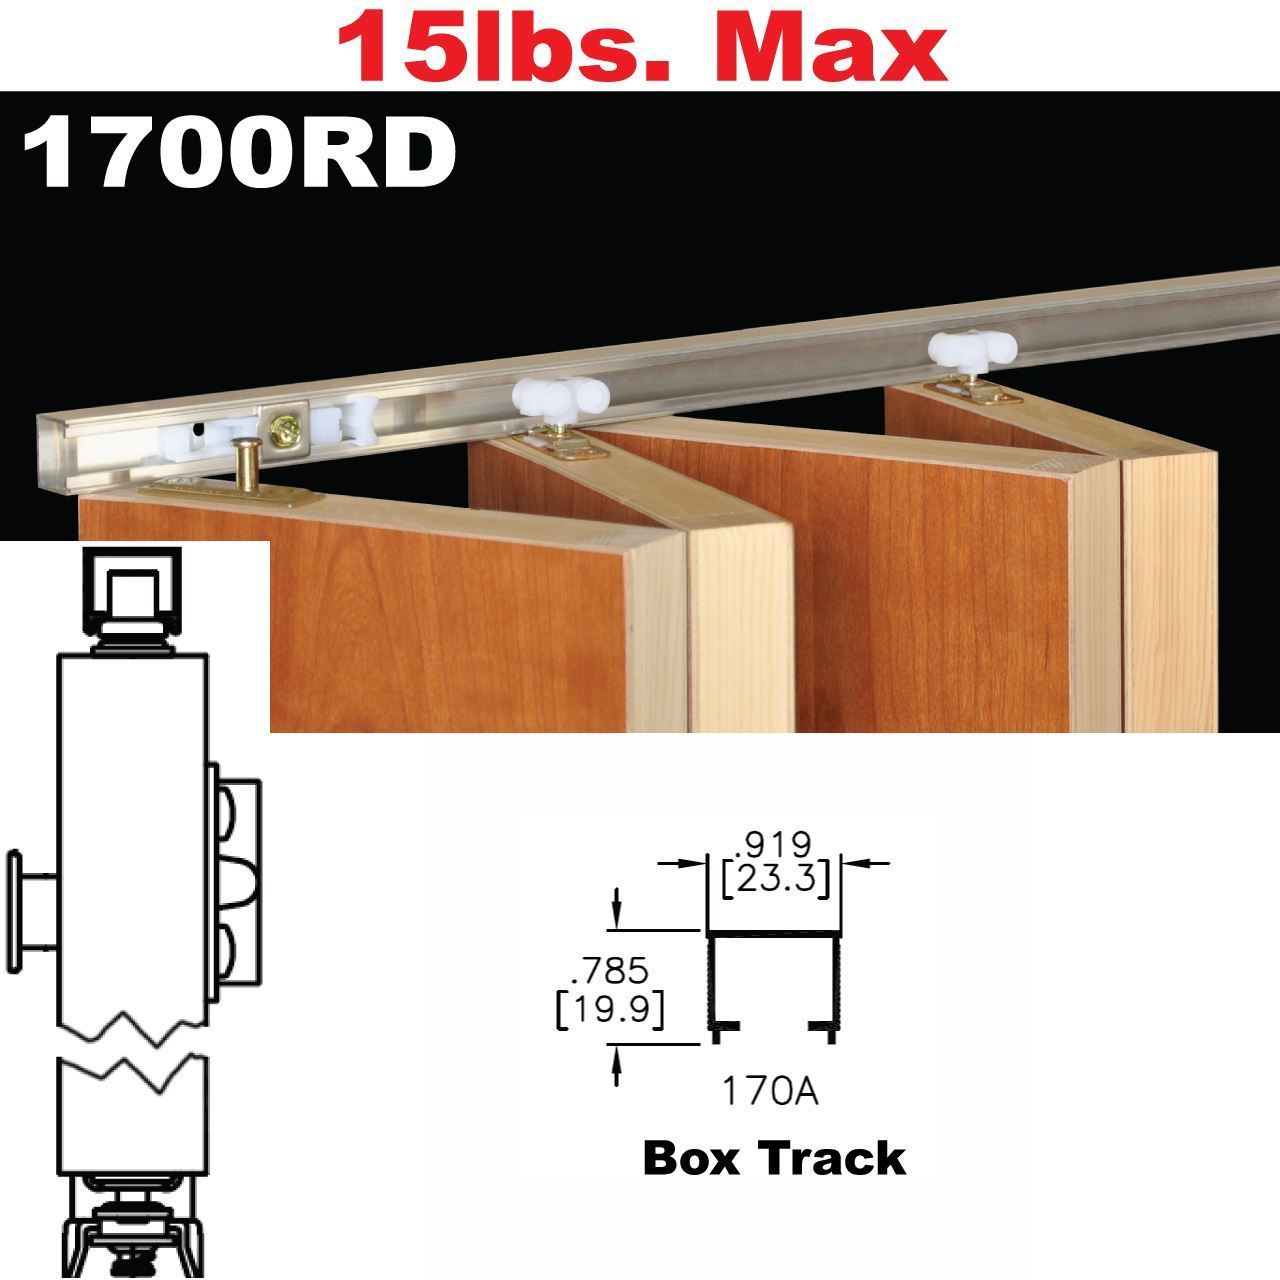 Johnson Hardware 1700rd Multi Fold Door Hardware